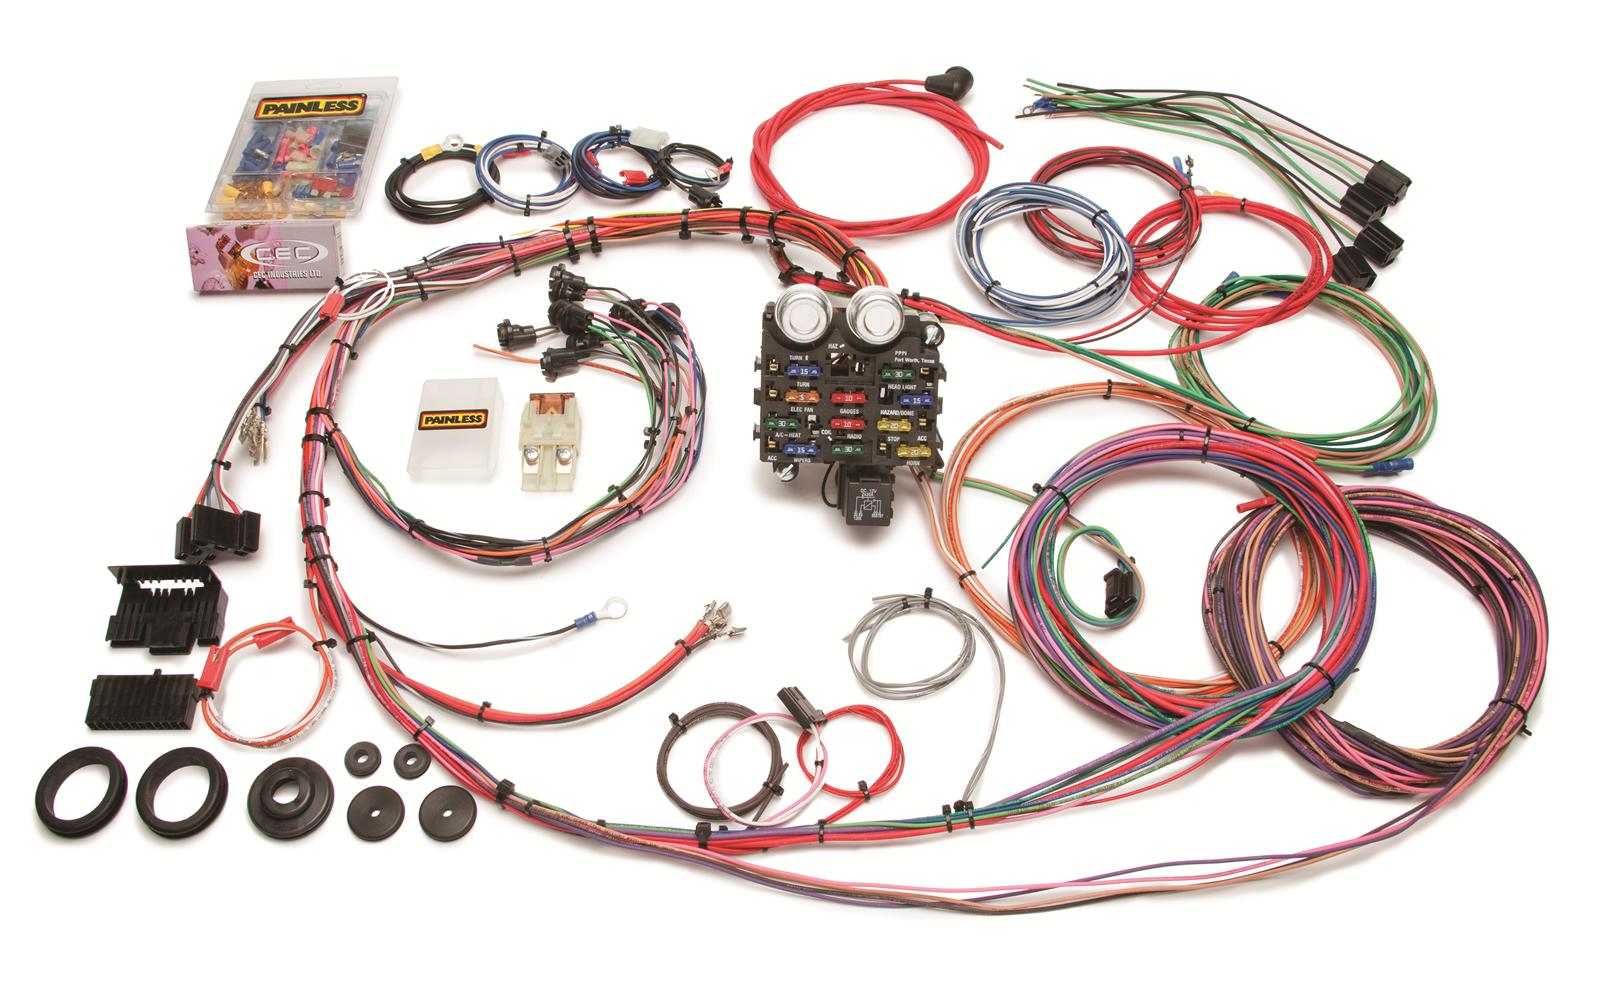 prf 10112_xl painless performance 19 circuit gmc chevy truck harnesses 10112 gm truck wiring harness at honlapkeszites.co